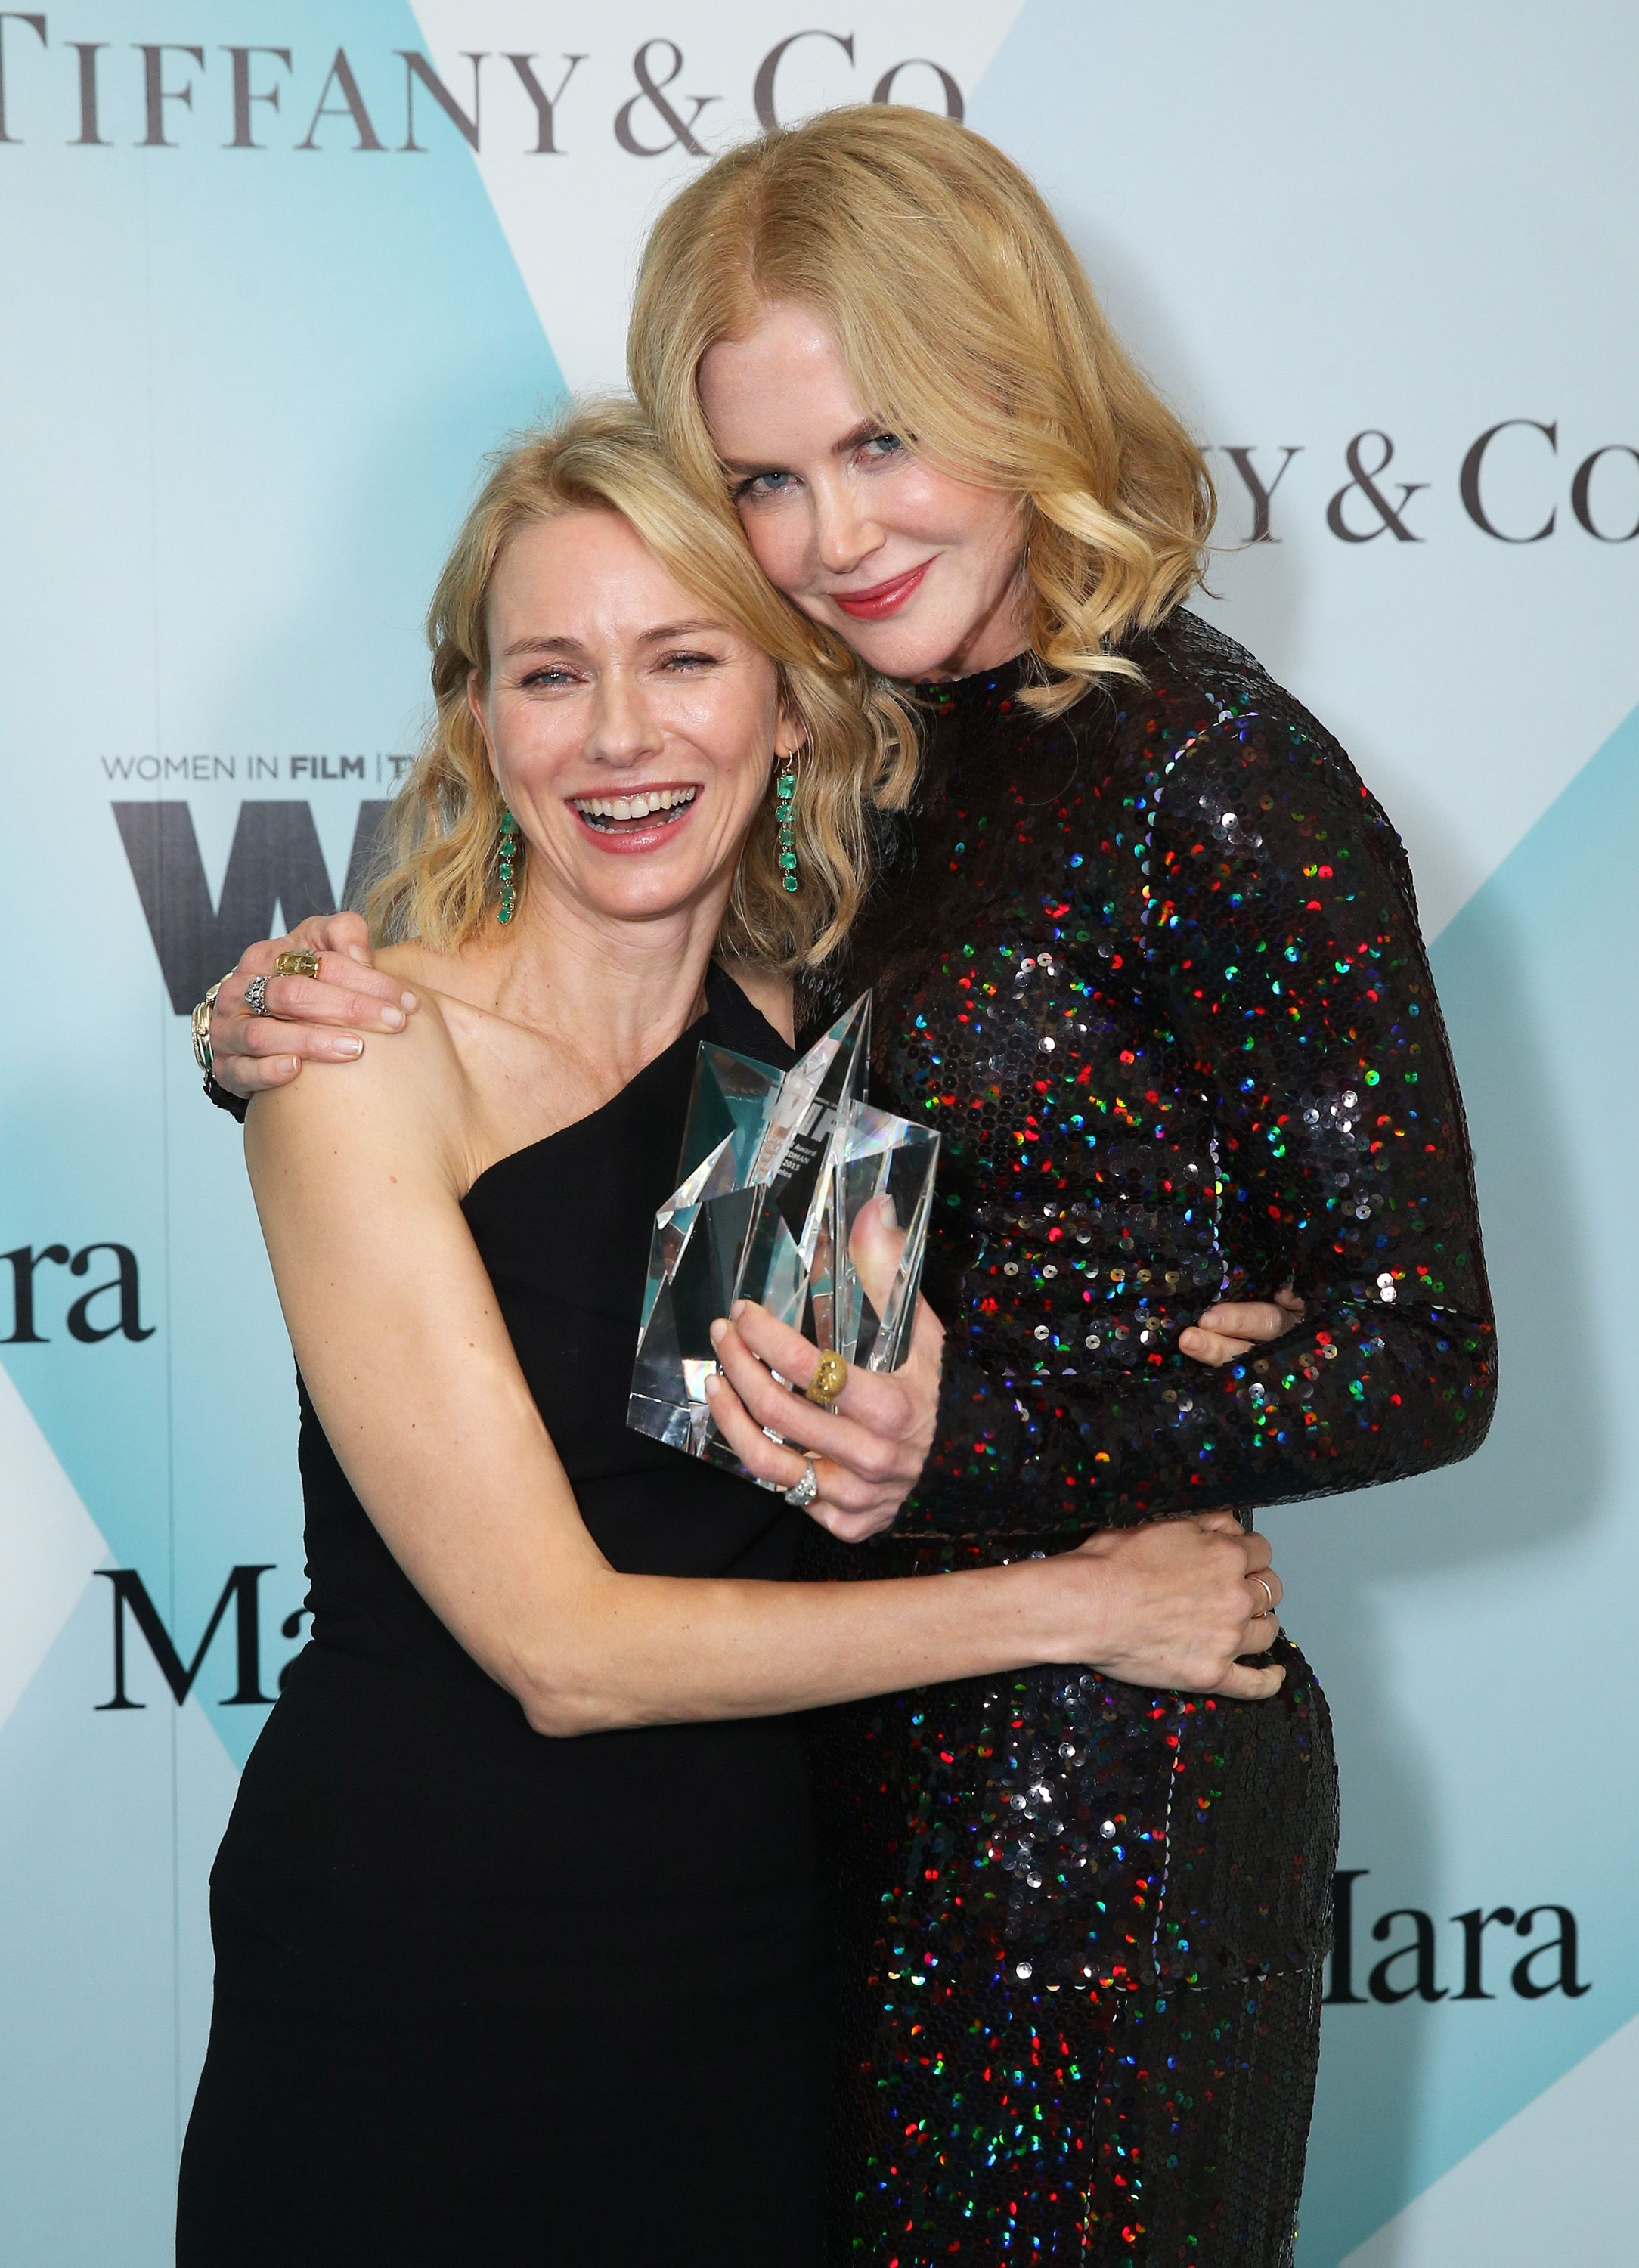 Naomi Watts & Nicole Kidman Watts and Kidman have been friends for more than 25 years, and they'll happily gush about each other. They've only worked together once, for 1991's Flirting, but their friendship has withstood the test of time.